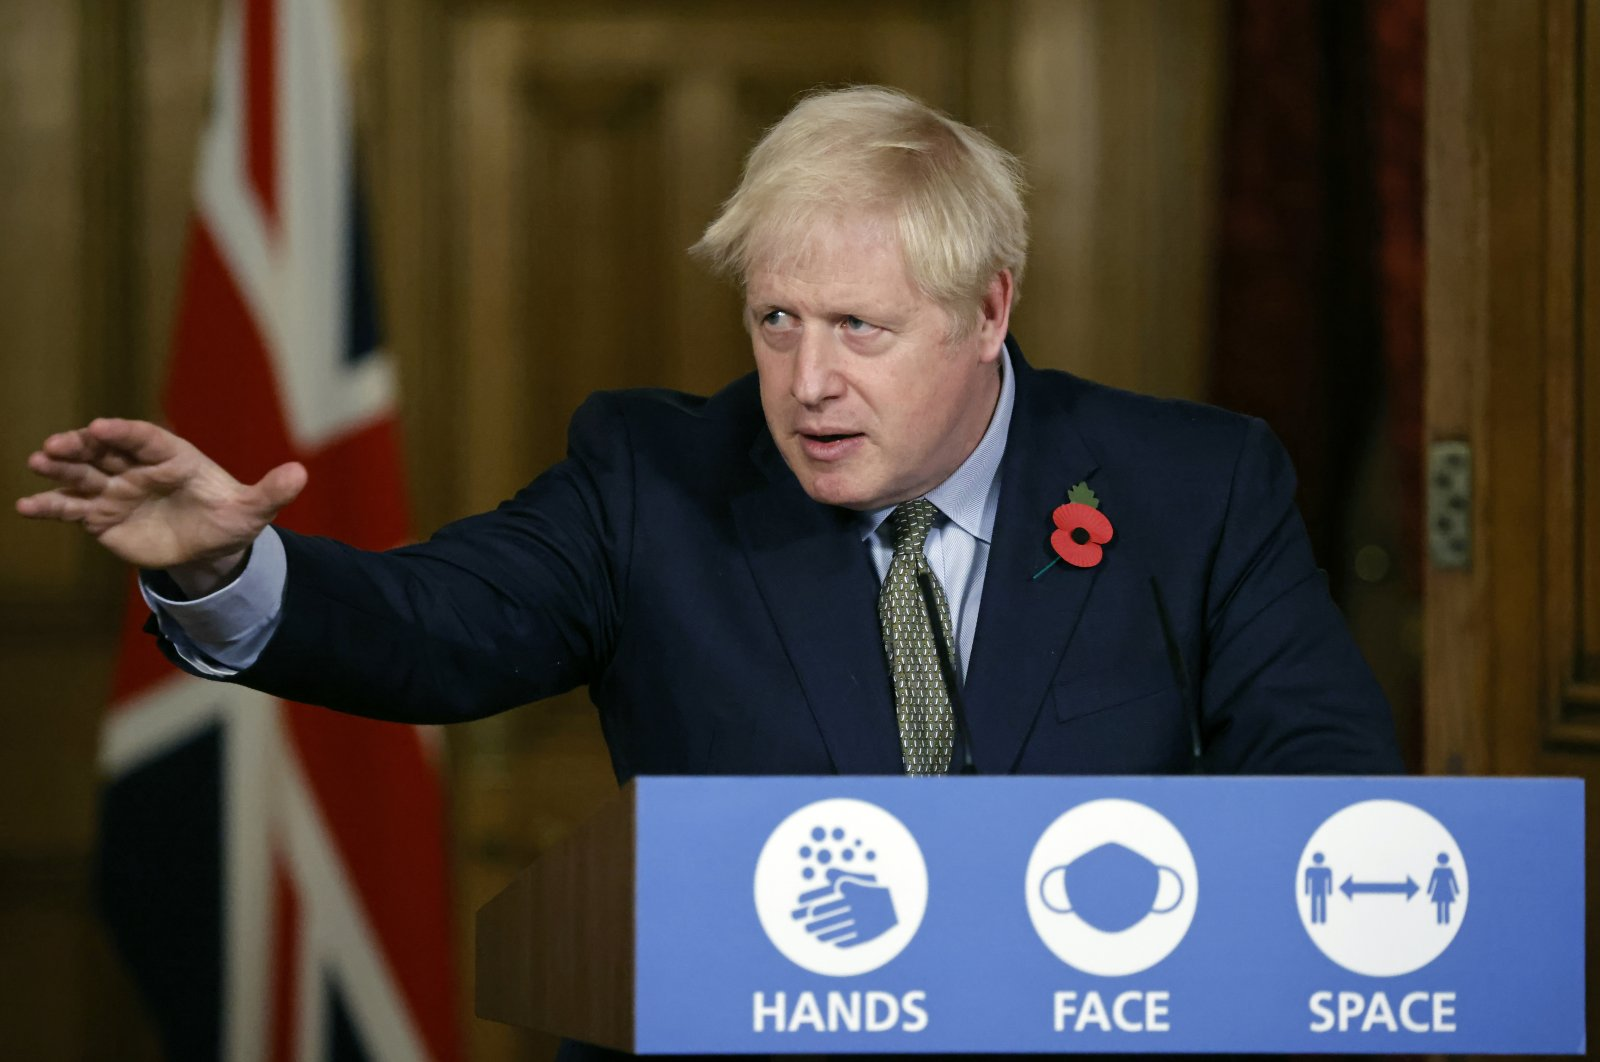 British Prime Minister Boris Johnson reaches out during a virtual press conference at 10 Downing Street, London, Nov. 9, 2020. (AP Photo)